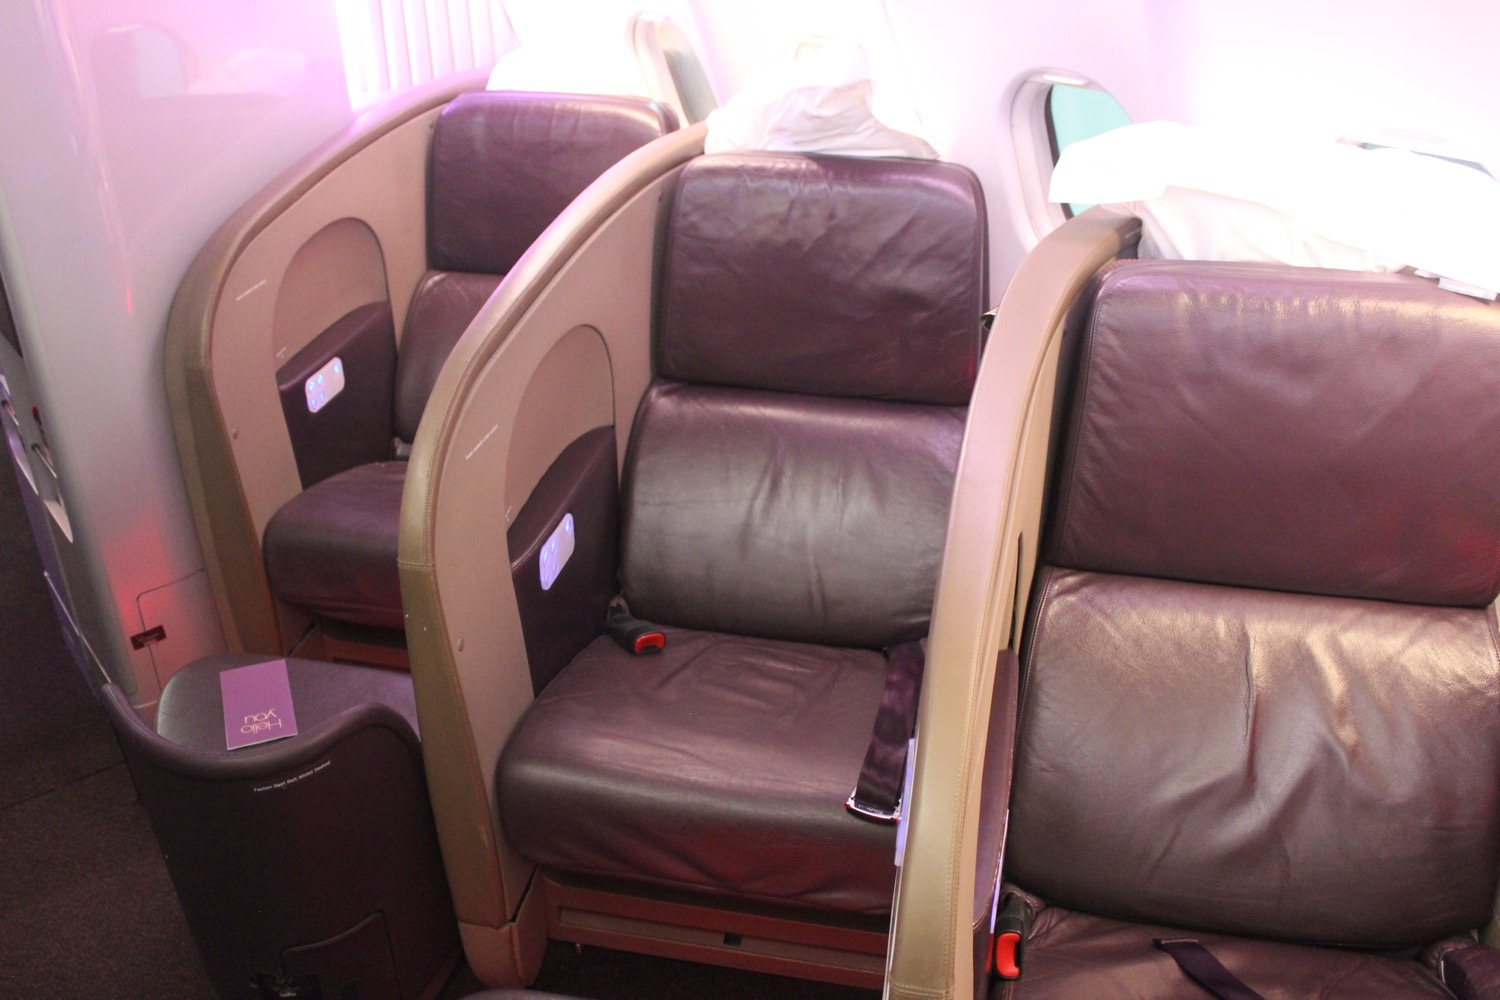 Virgin Atlantic A343 Upper Class Review - 13